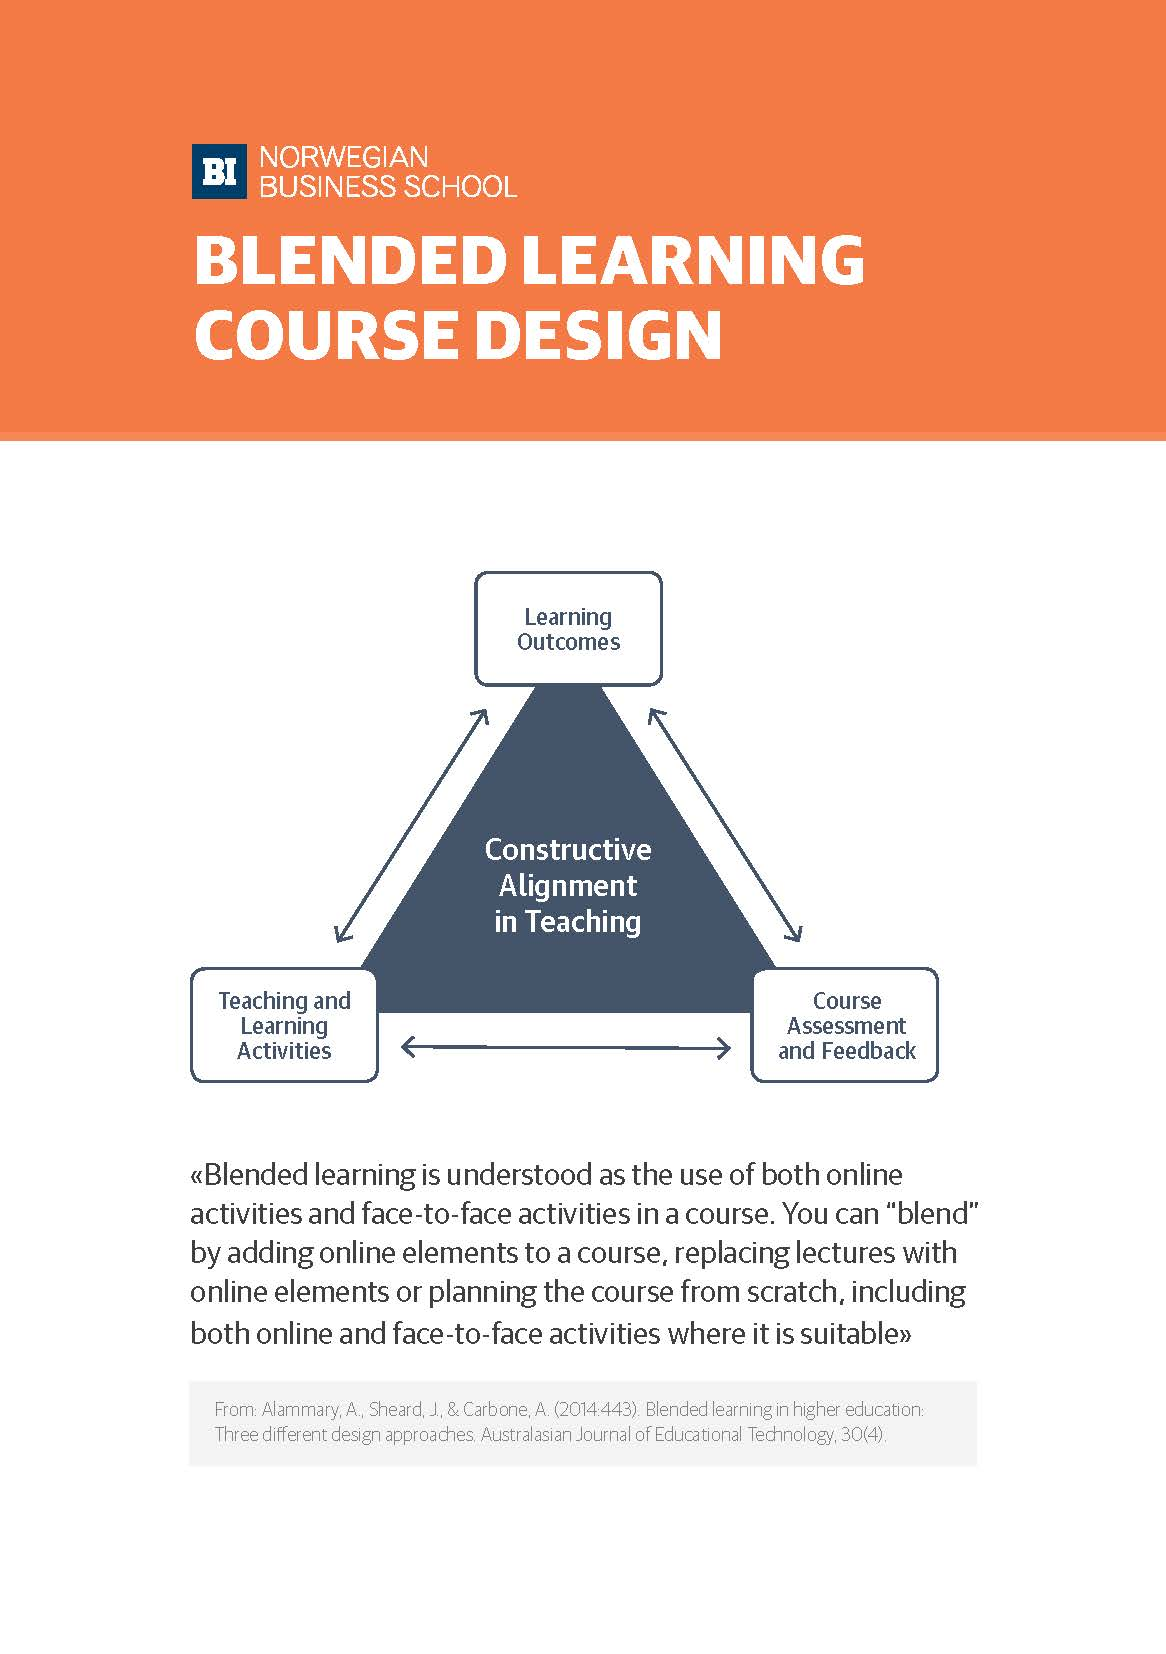 Blended Learning Course Design